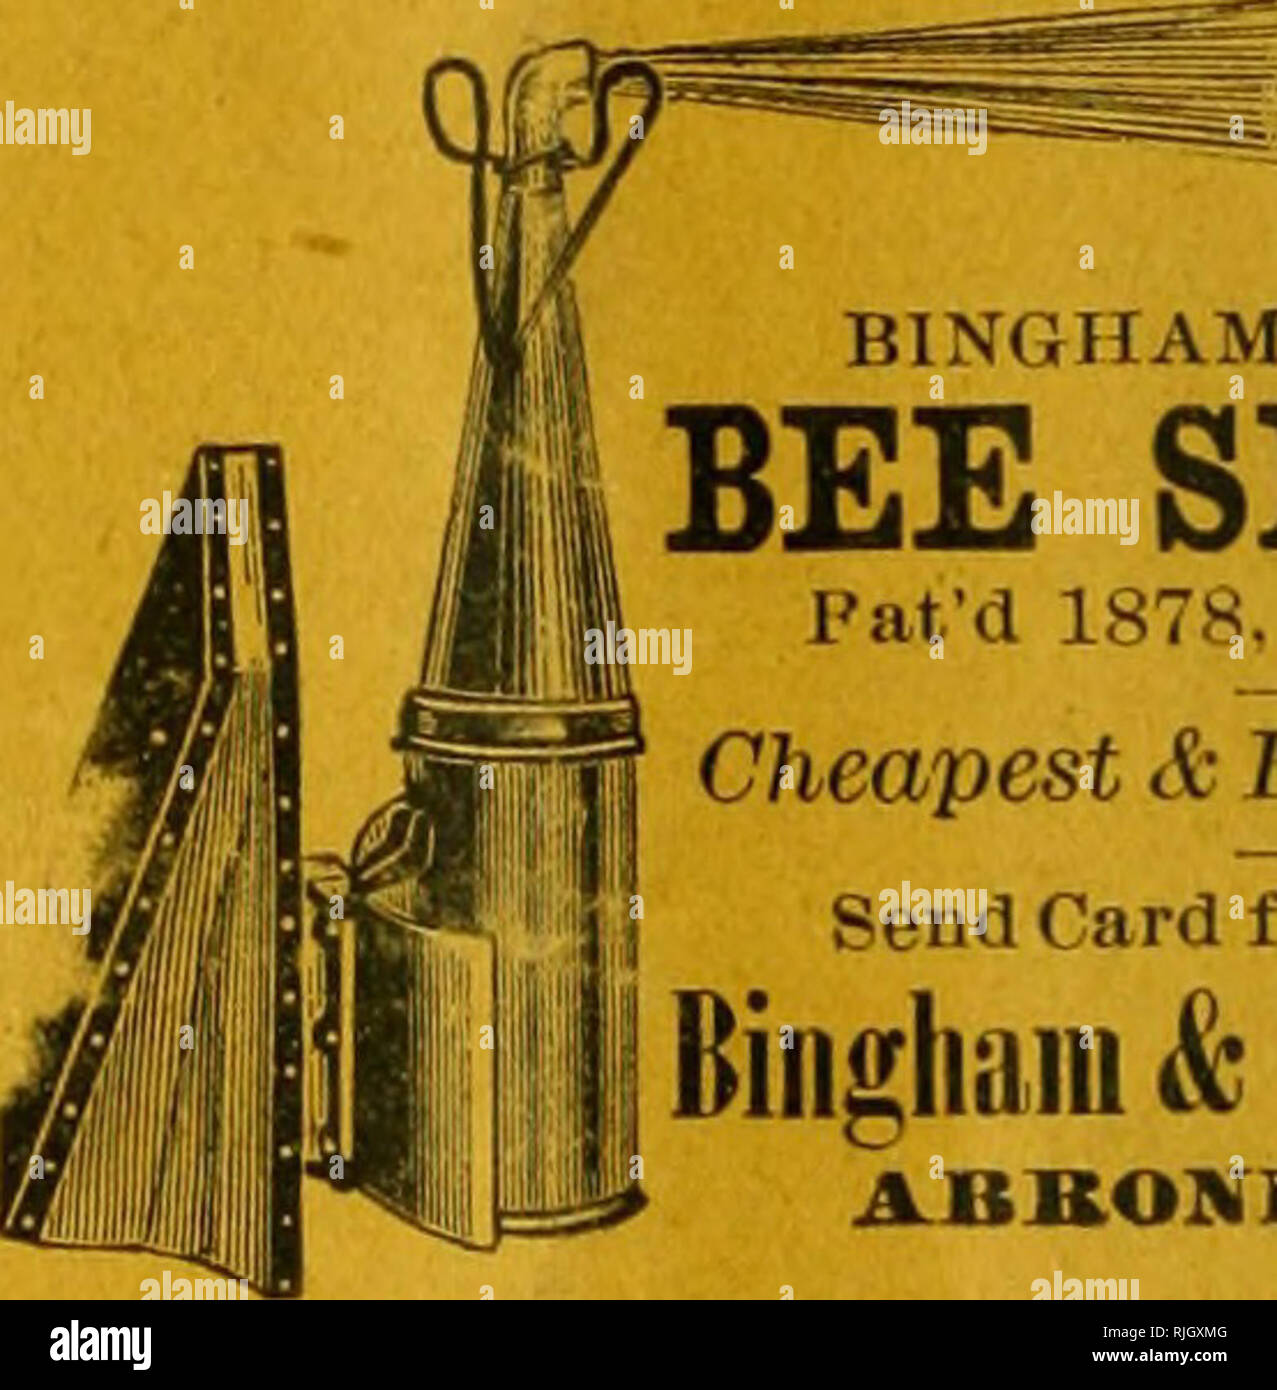 . The Bee-keepers' review. Bee culture. BINGHAM PERFECT BEE SMOKER I'at'd 1878.1882, & 1802. Cheapest & Best on Earth. Send Card for Circular to Bingham &Hetheriiigtoii ABKONIA, MICH. ^^^^ ^ Queens rank with the beet in g^g ' fhe world. I rear none ex- â I â cept the best Italians bred for â I I busintss, beauty and all good â I I (lualities. I strive to excel, and â A I have shipped to every State and â I to foreign countries, and if I have M ^ '^ dissatisfied customer, I don't r A know it. A large number of queens on hand. Breeders 4 and .5 band, f 2.00; straight 5 band, S^^.OO - Stock Image